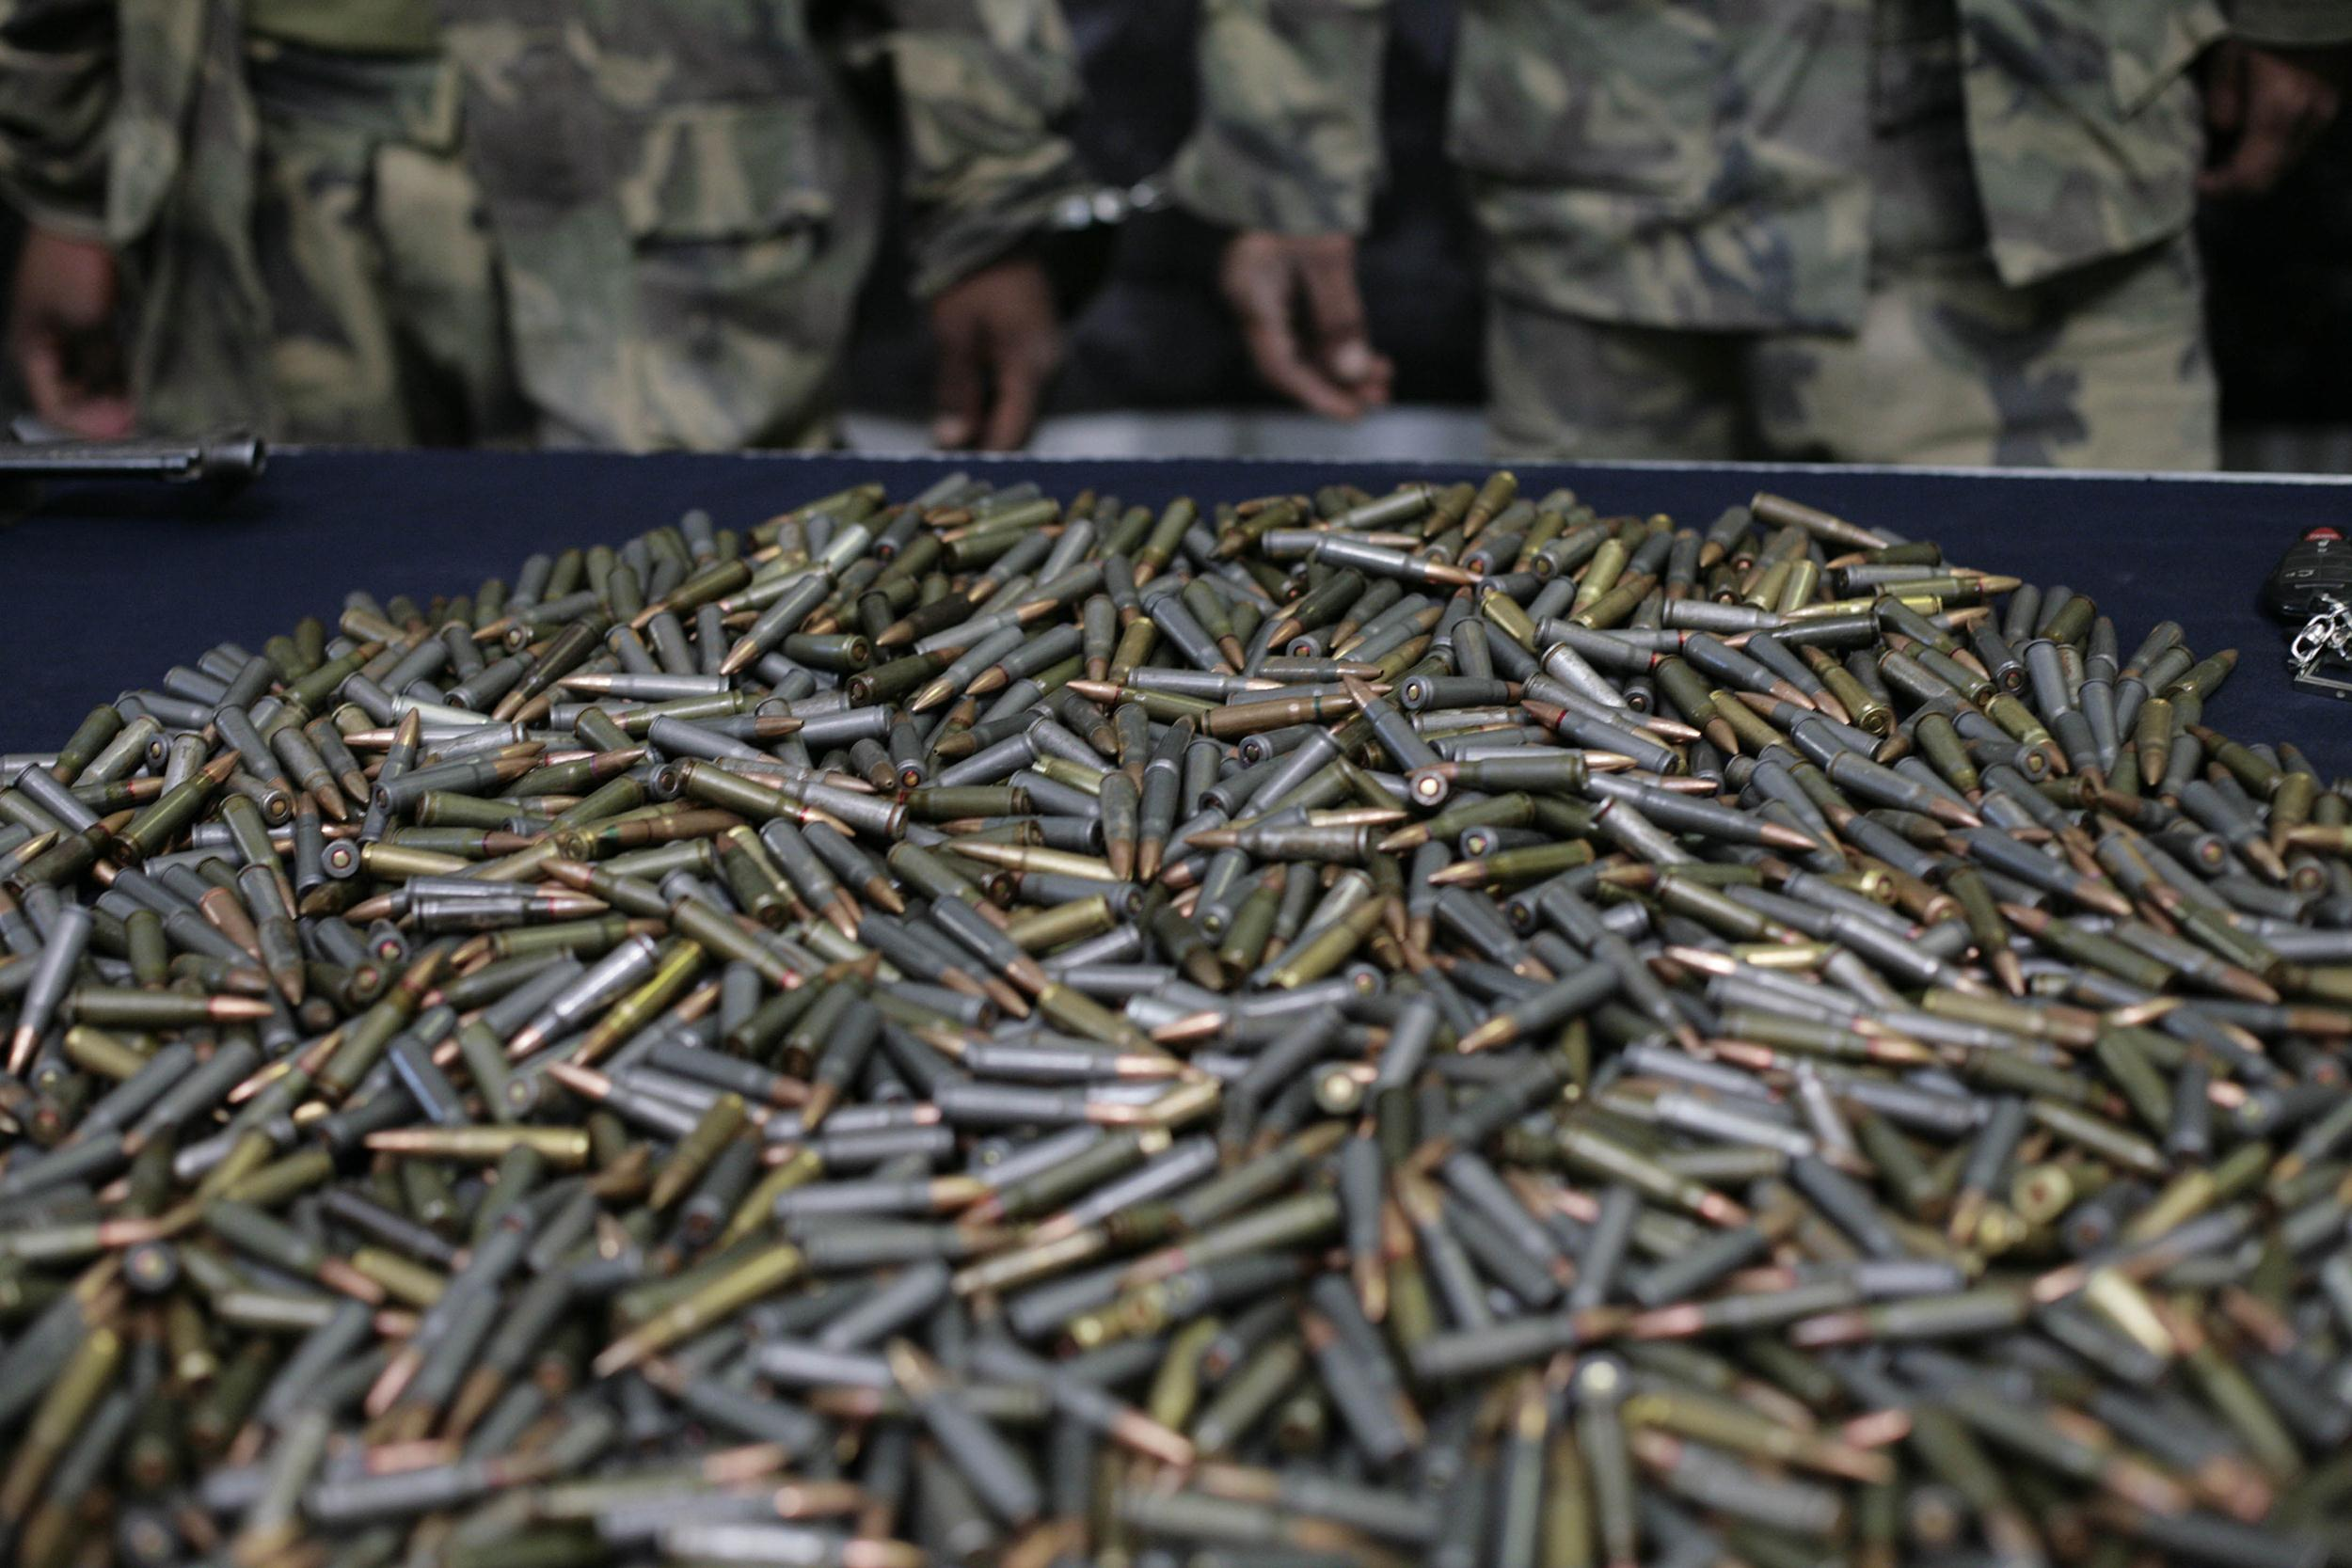 Image: AK-47 ammunition sits on a table  in front of 18 alleged members of the drug cartel El Milenio during a presentation to the press in Guadalajara, Mexico, on May 23, 2010.